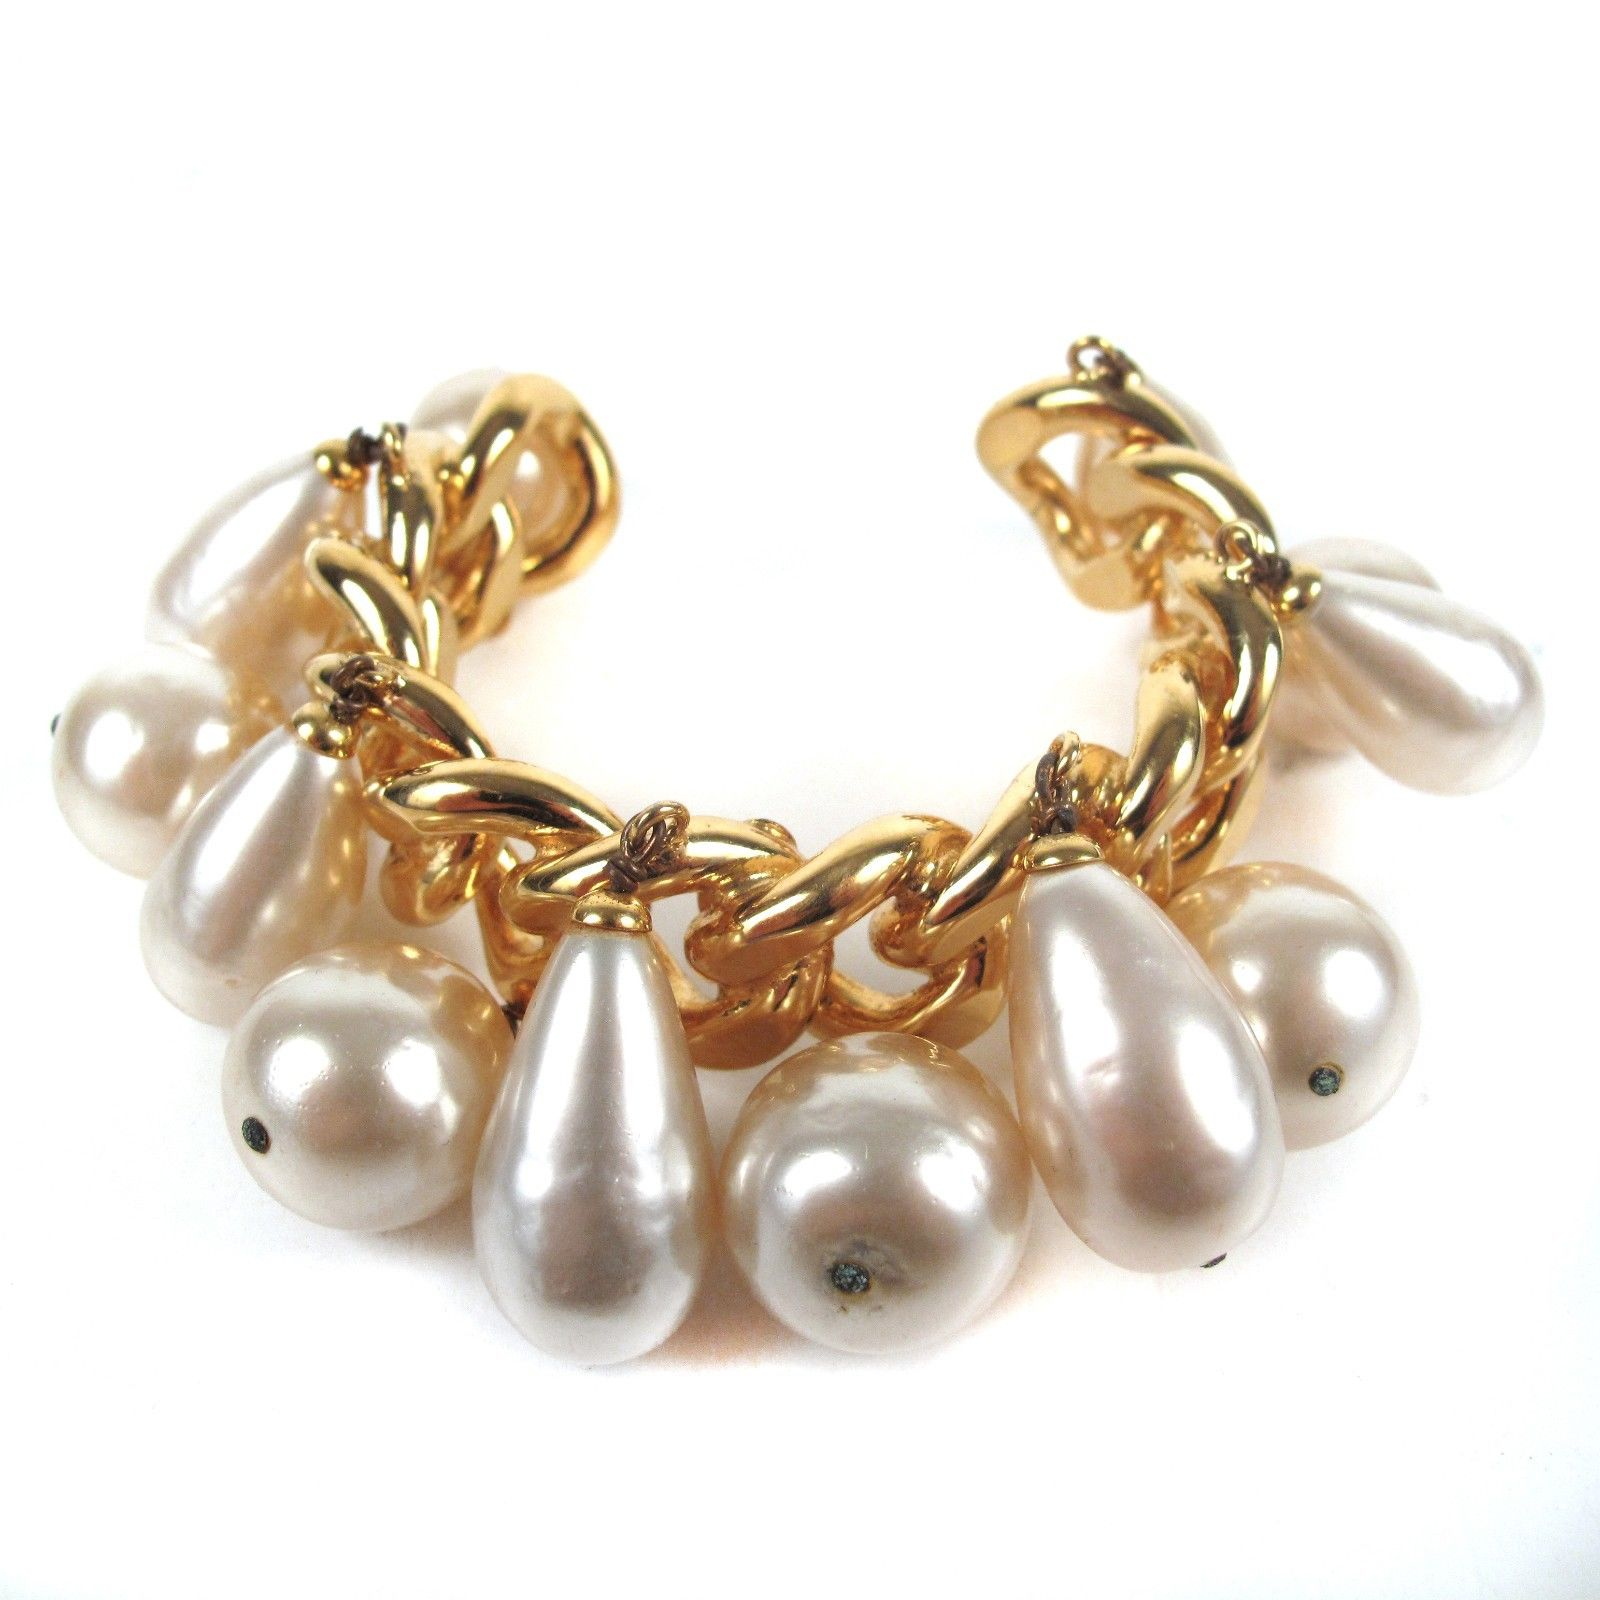 """Image of """"Chanel Gold Tone Faux Pearl Chain Cuff Charm Vintage Bracelet"""""""